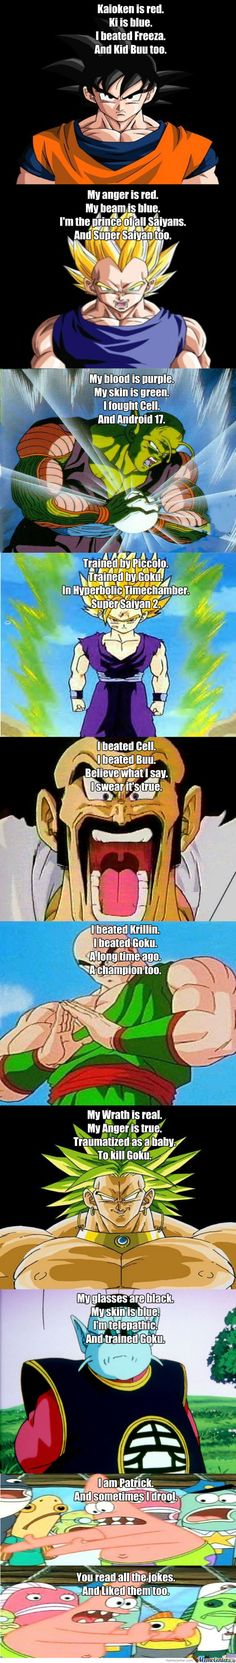 Funny Dbz Poems - Meme Center